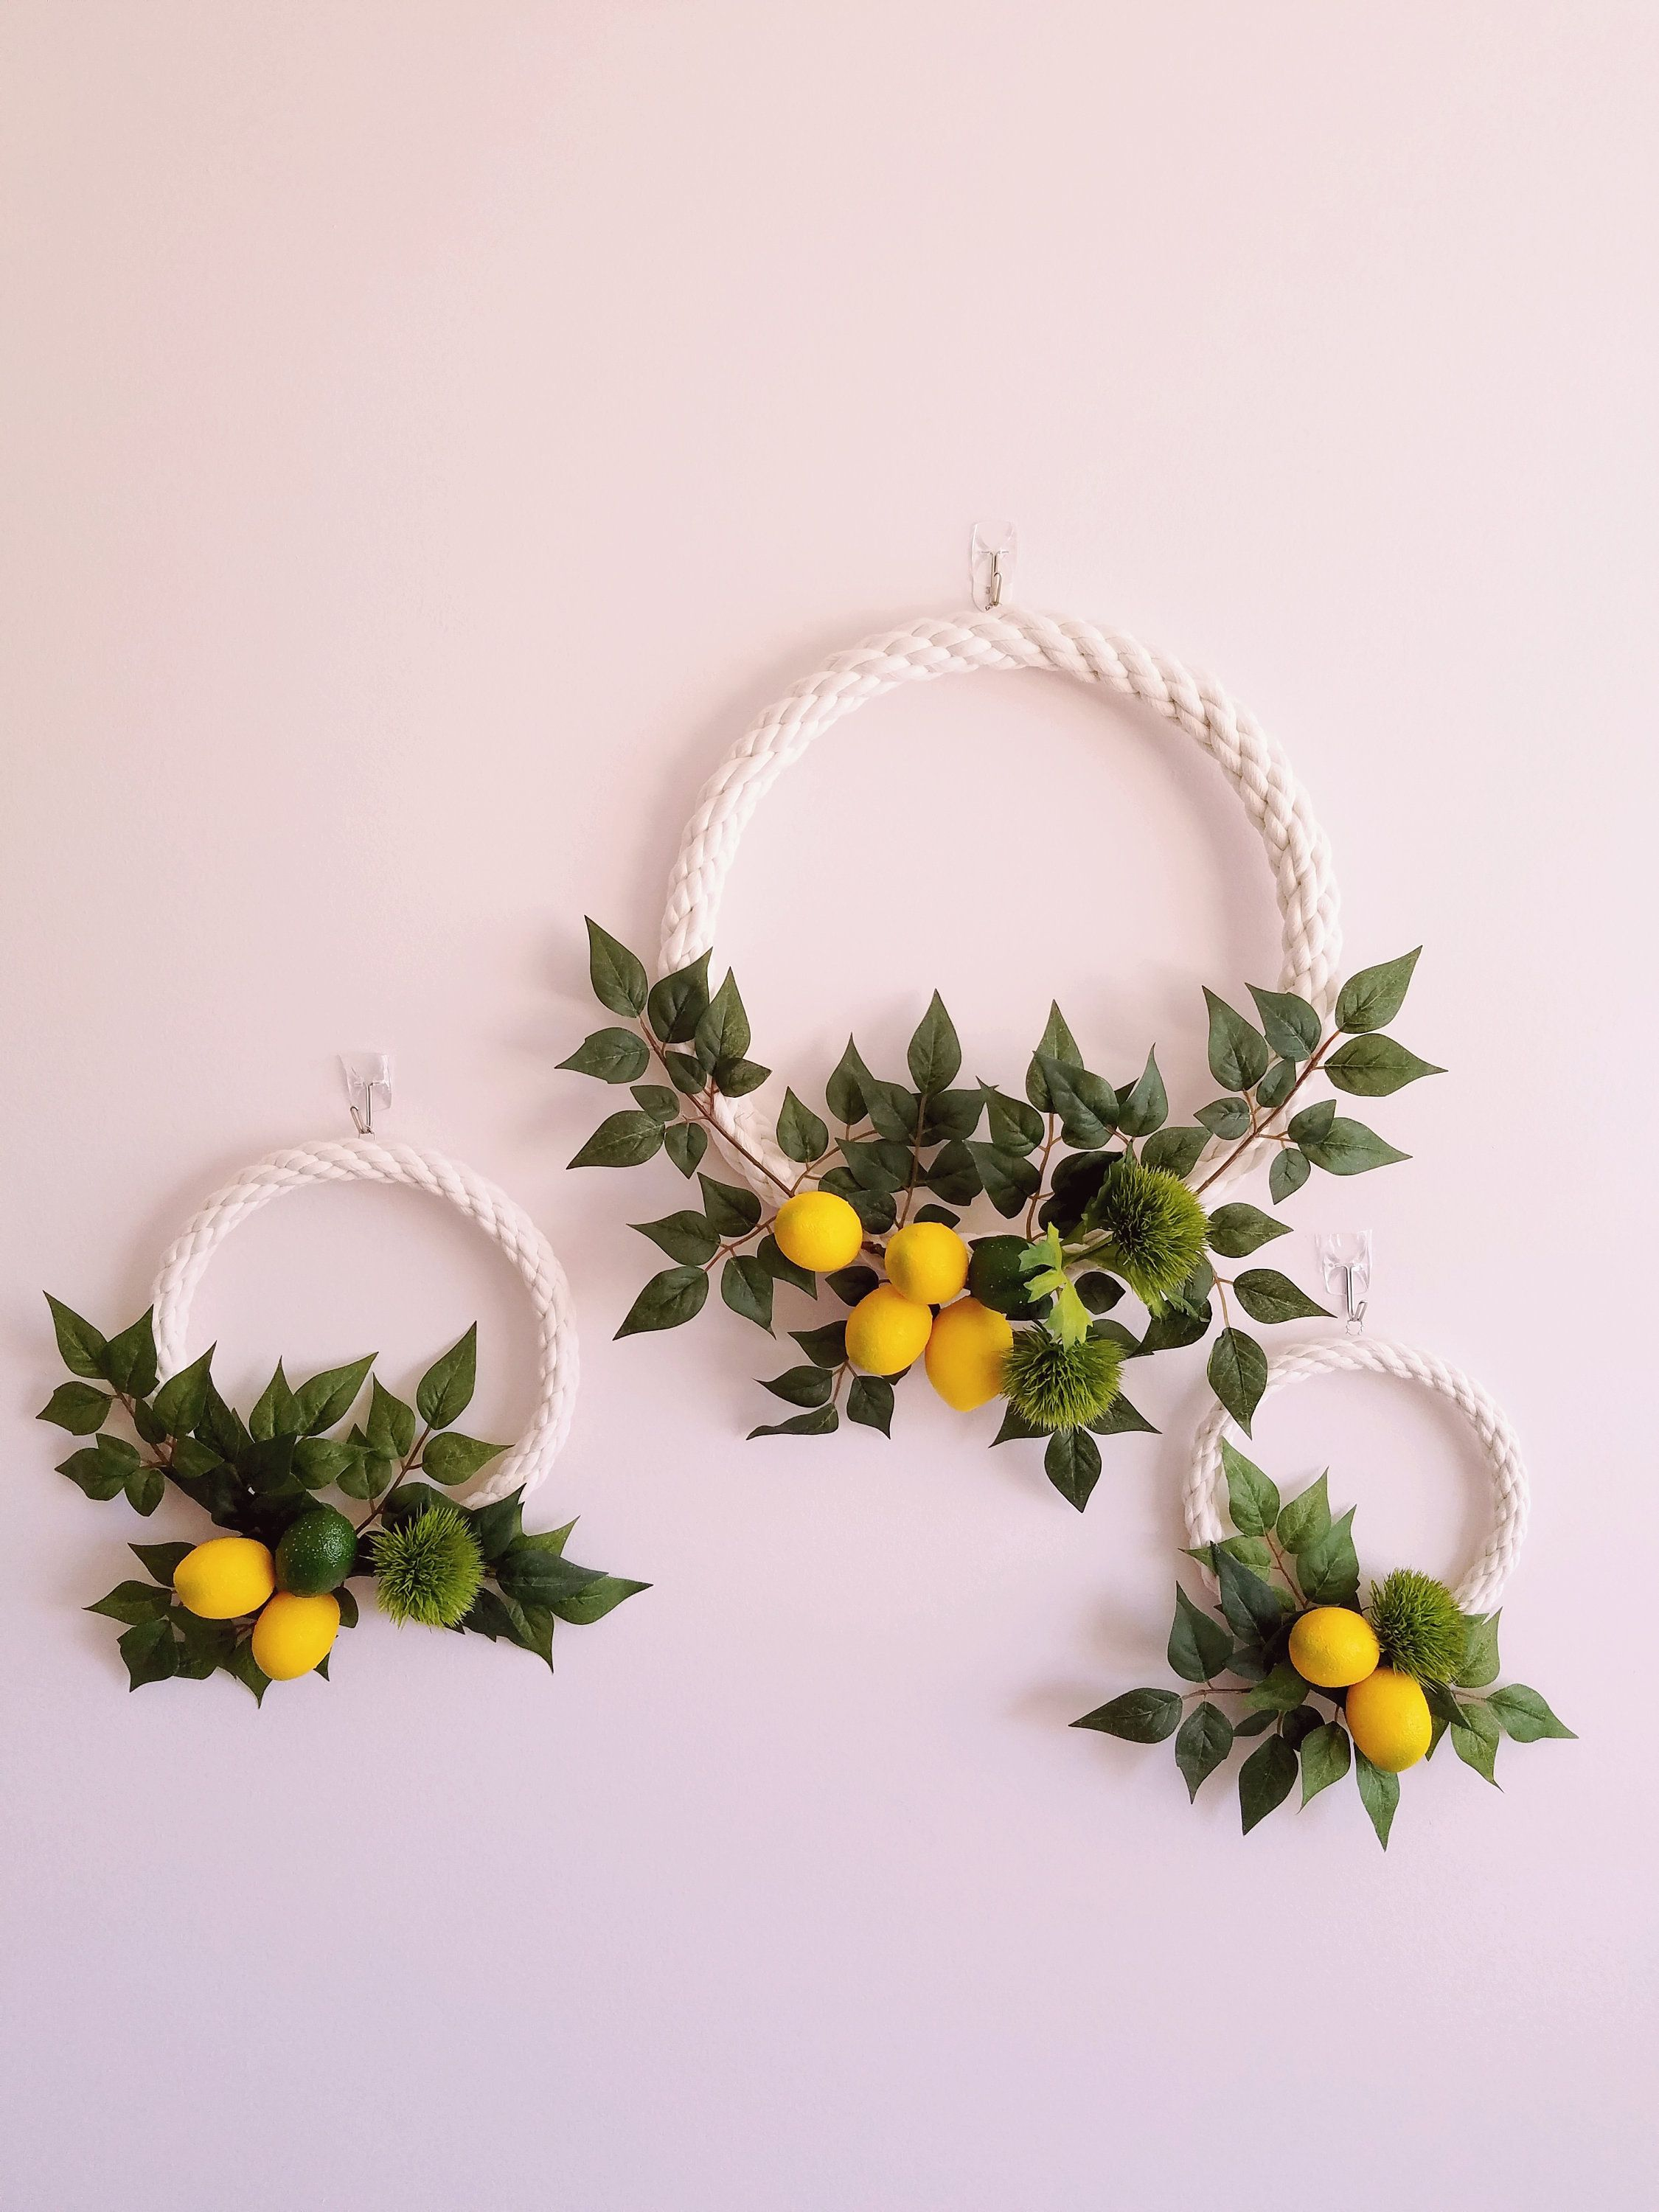 Modern Hoop Wreaths, Lemon Wreaths,  Lemon Wall Decor, Nursery Wreath Set, Photography Backdrop